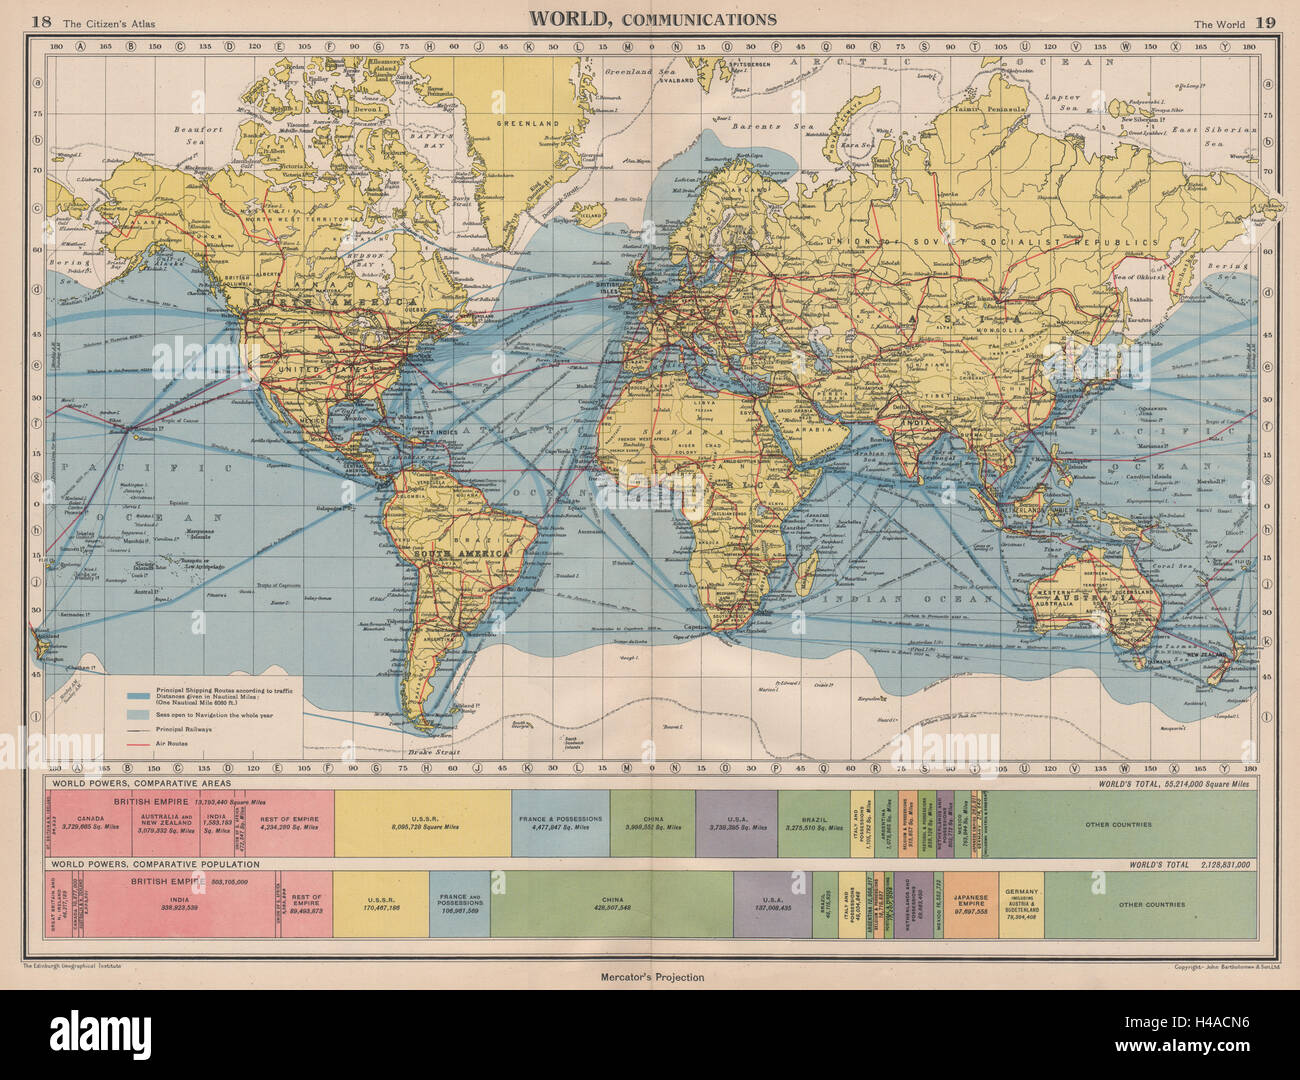 Shipping Routes Map Stock Photos & Shipping Routes Map Stock ...